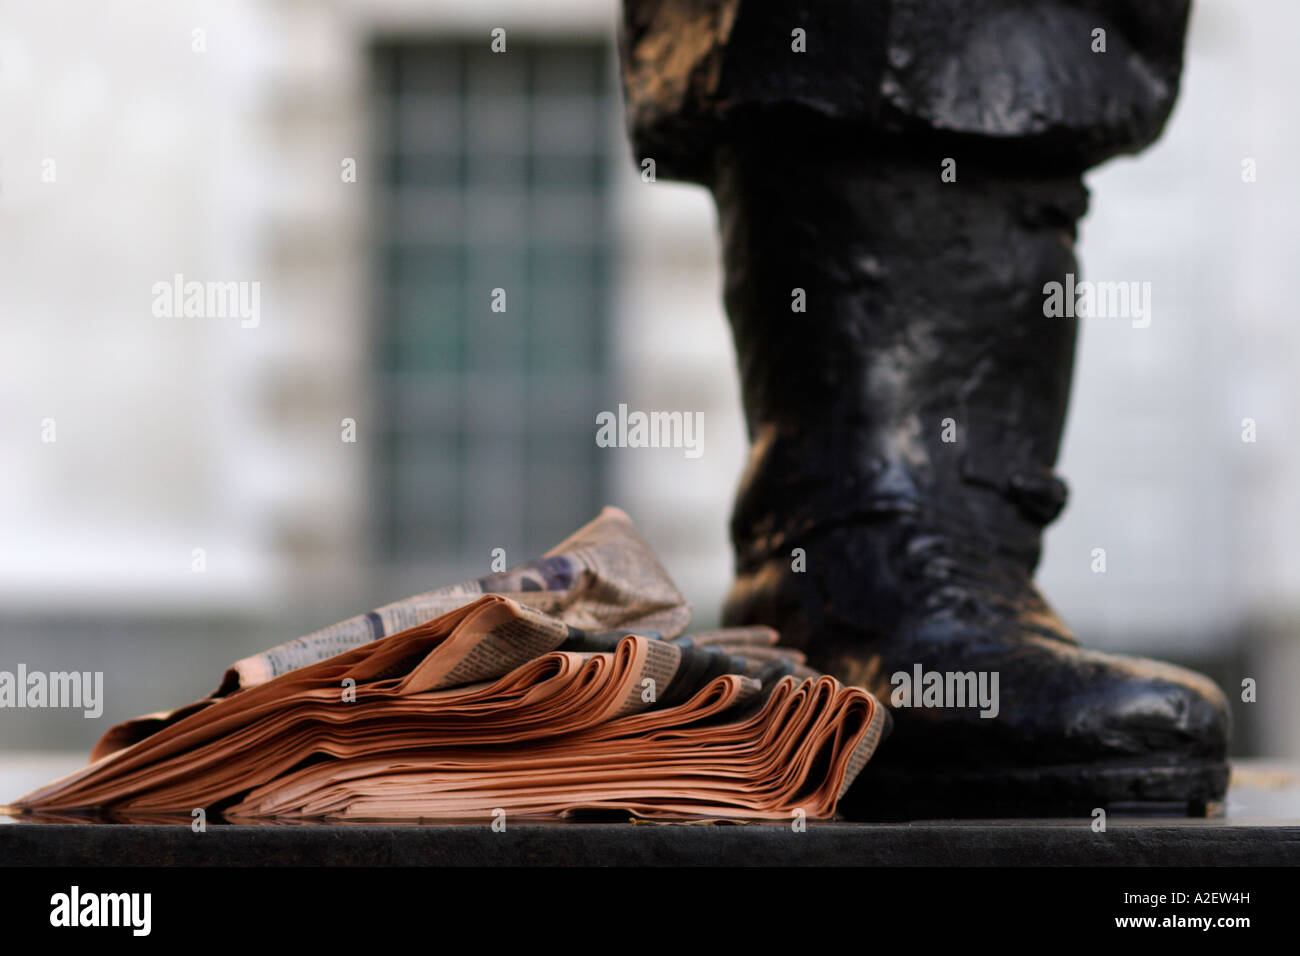 Foot of statue of general Smuts and a pile of newspapers in Whitehall London - Stock Image